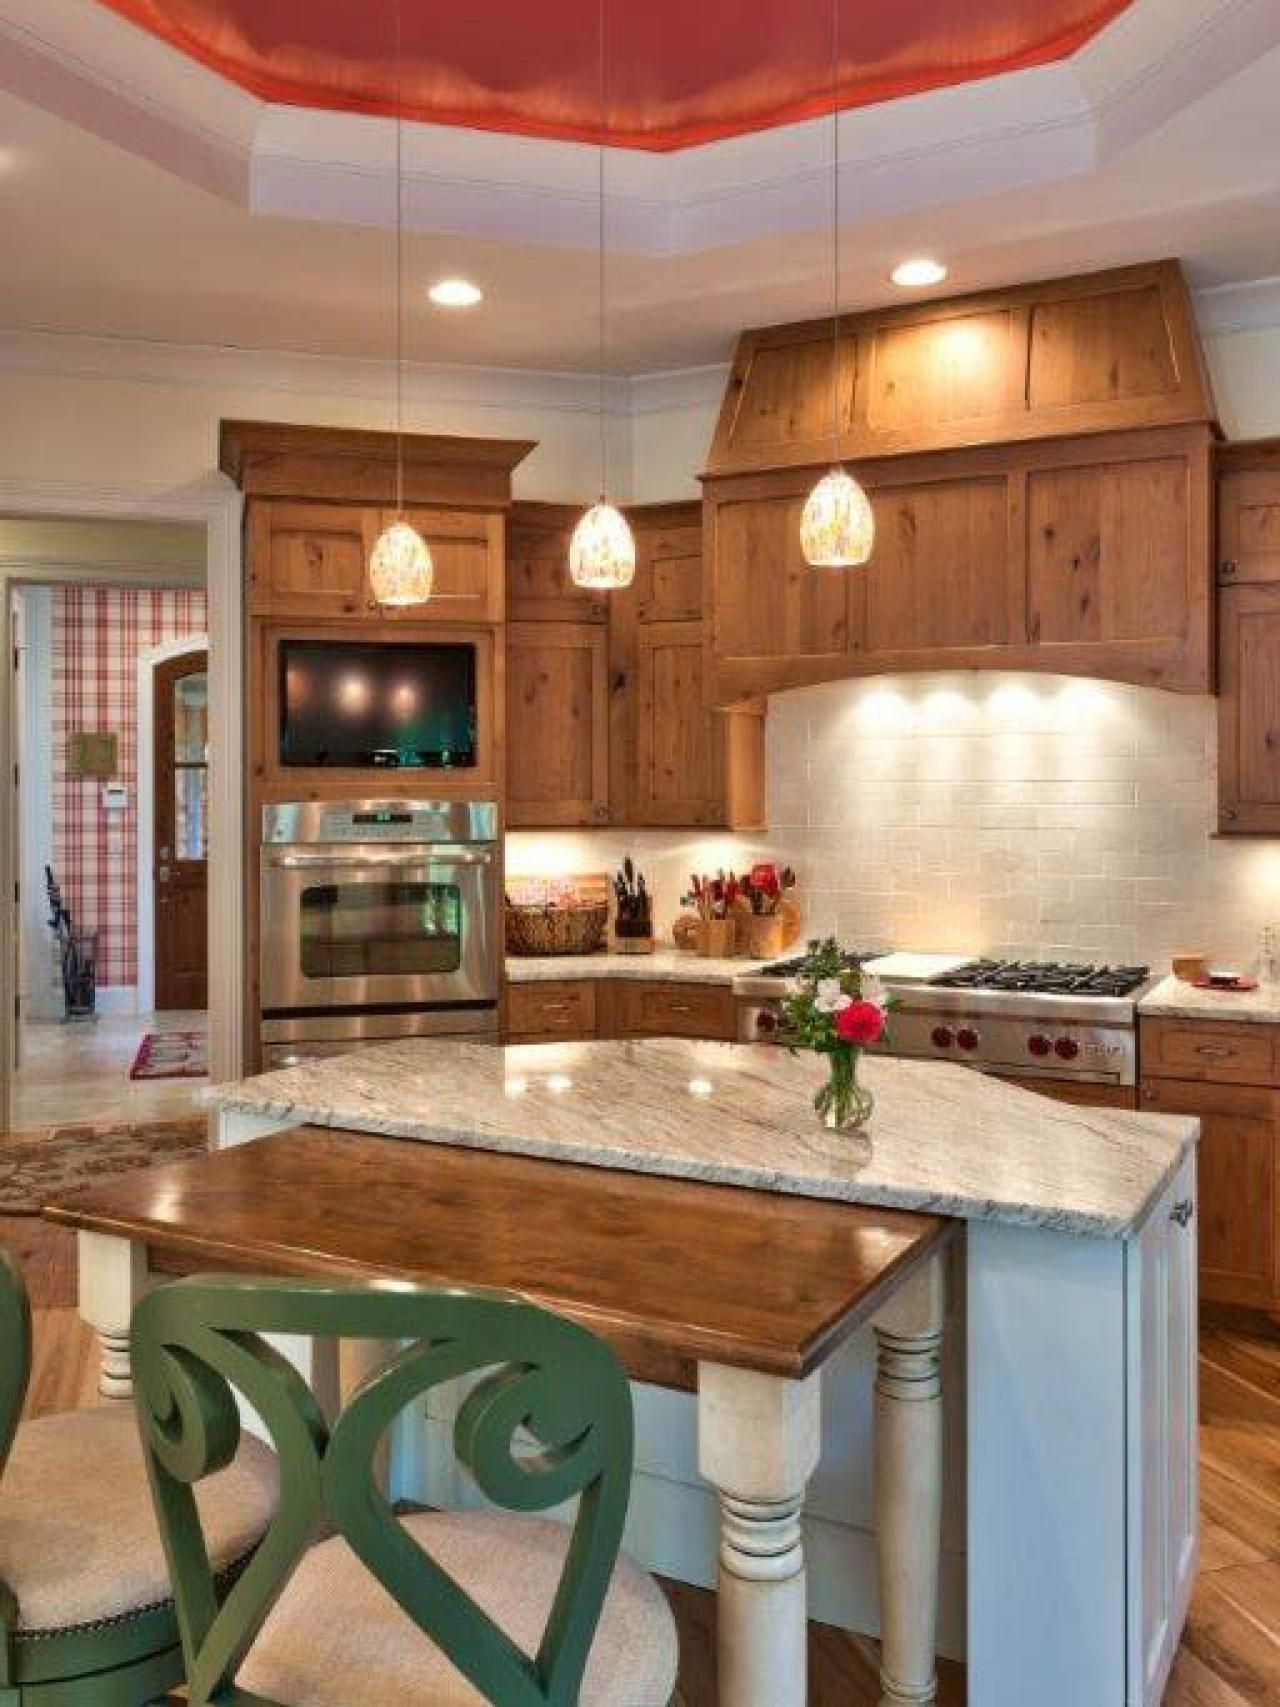 Pictures of Small Kitchen Design Ideas From